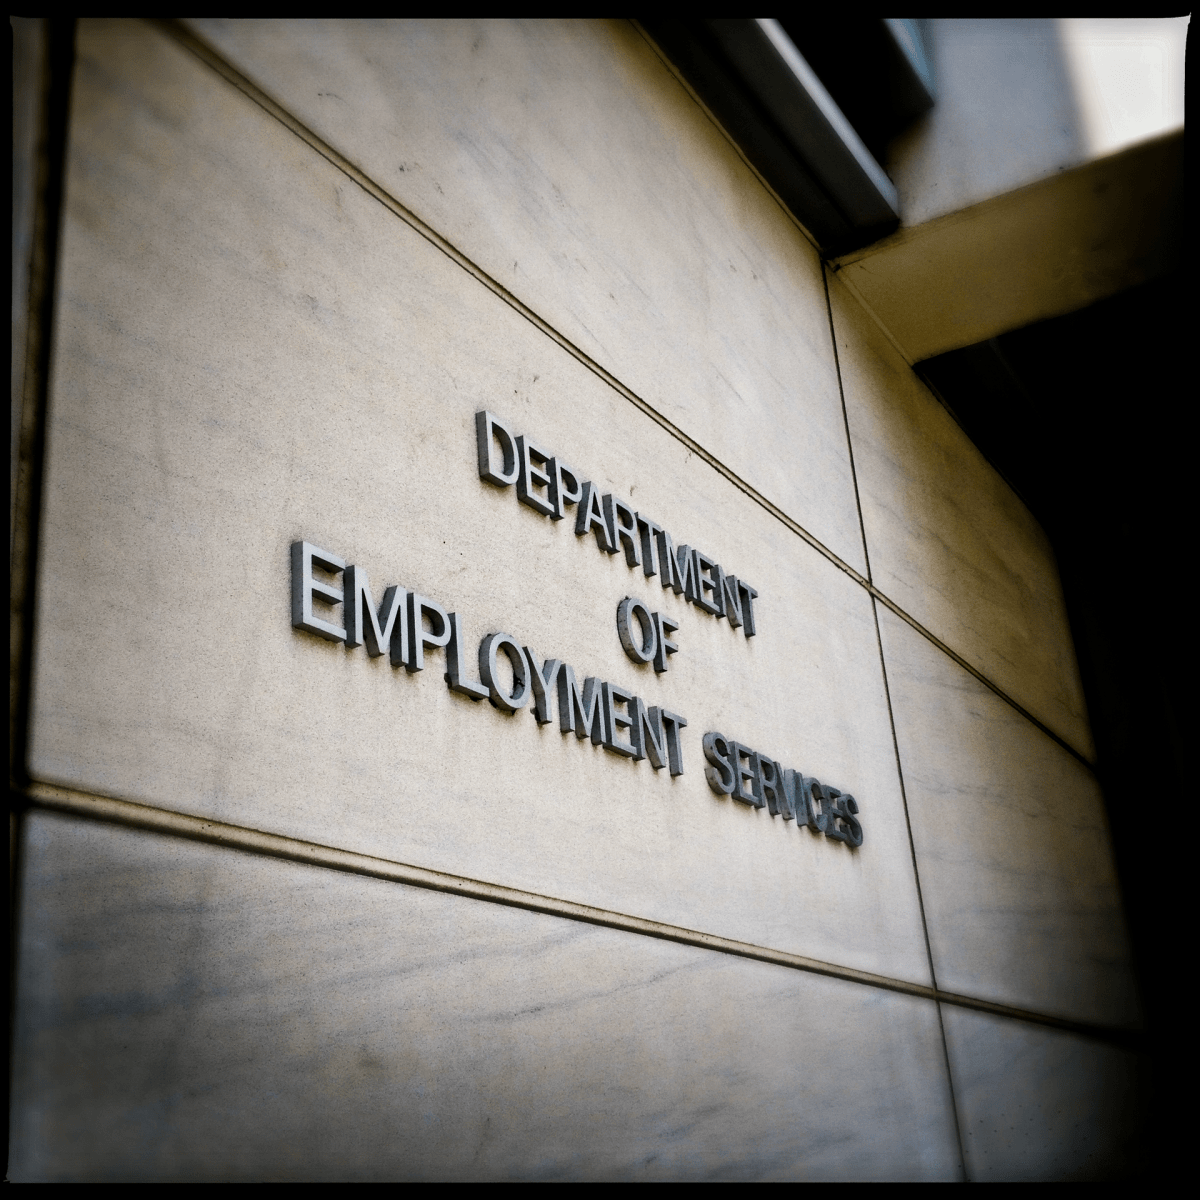 Department of Eemployment Services exterior